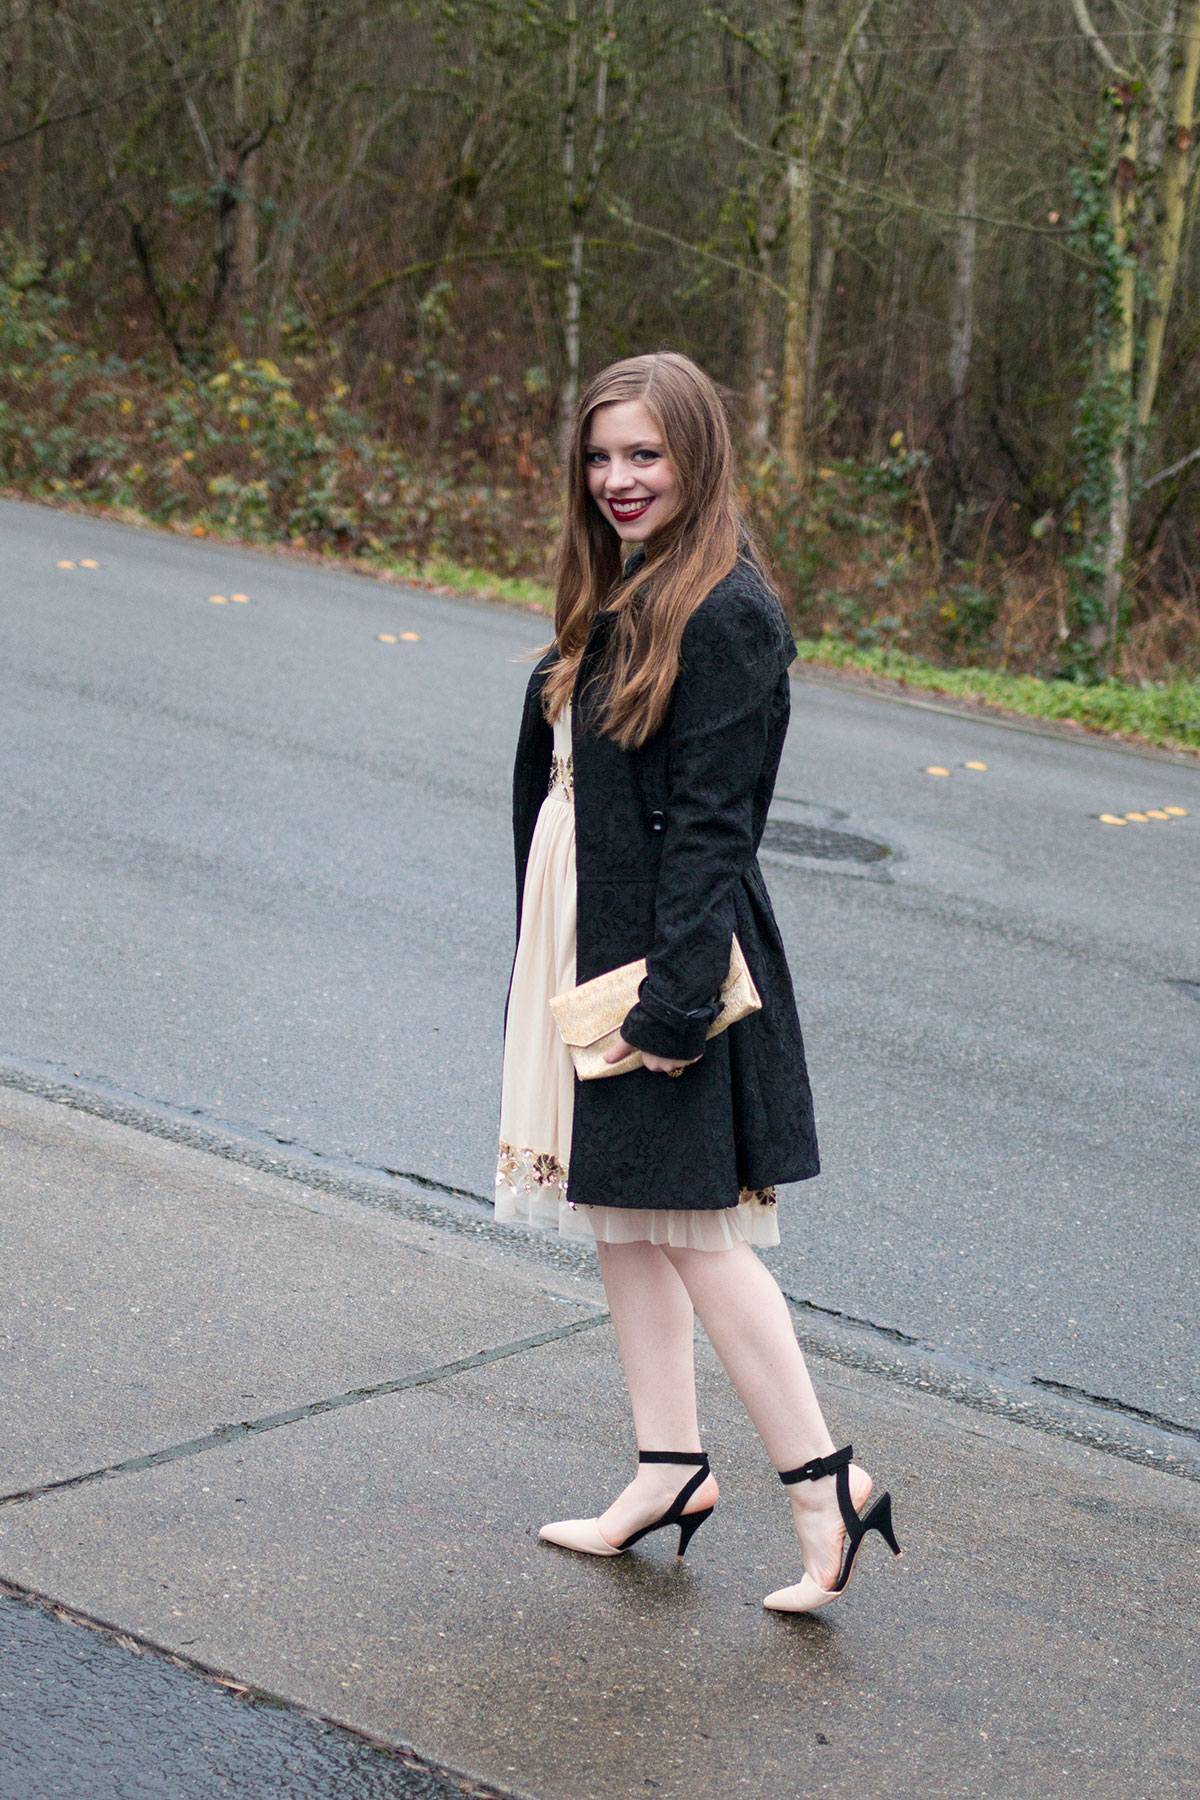 New Year Outfit Ideas: Dressy Outfit Frock & Frill Embellished Skater Dress Outfit // hellorigby seattle fashion & beauty blog